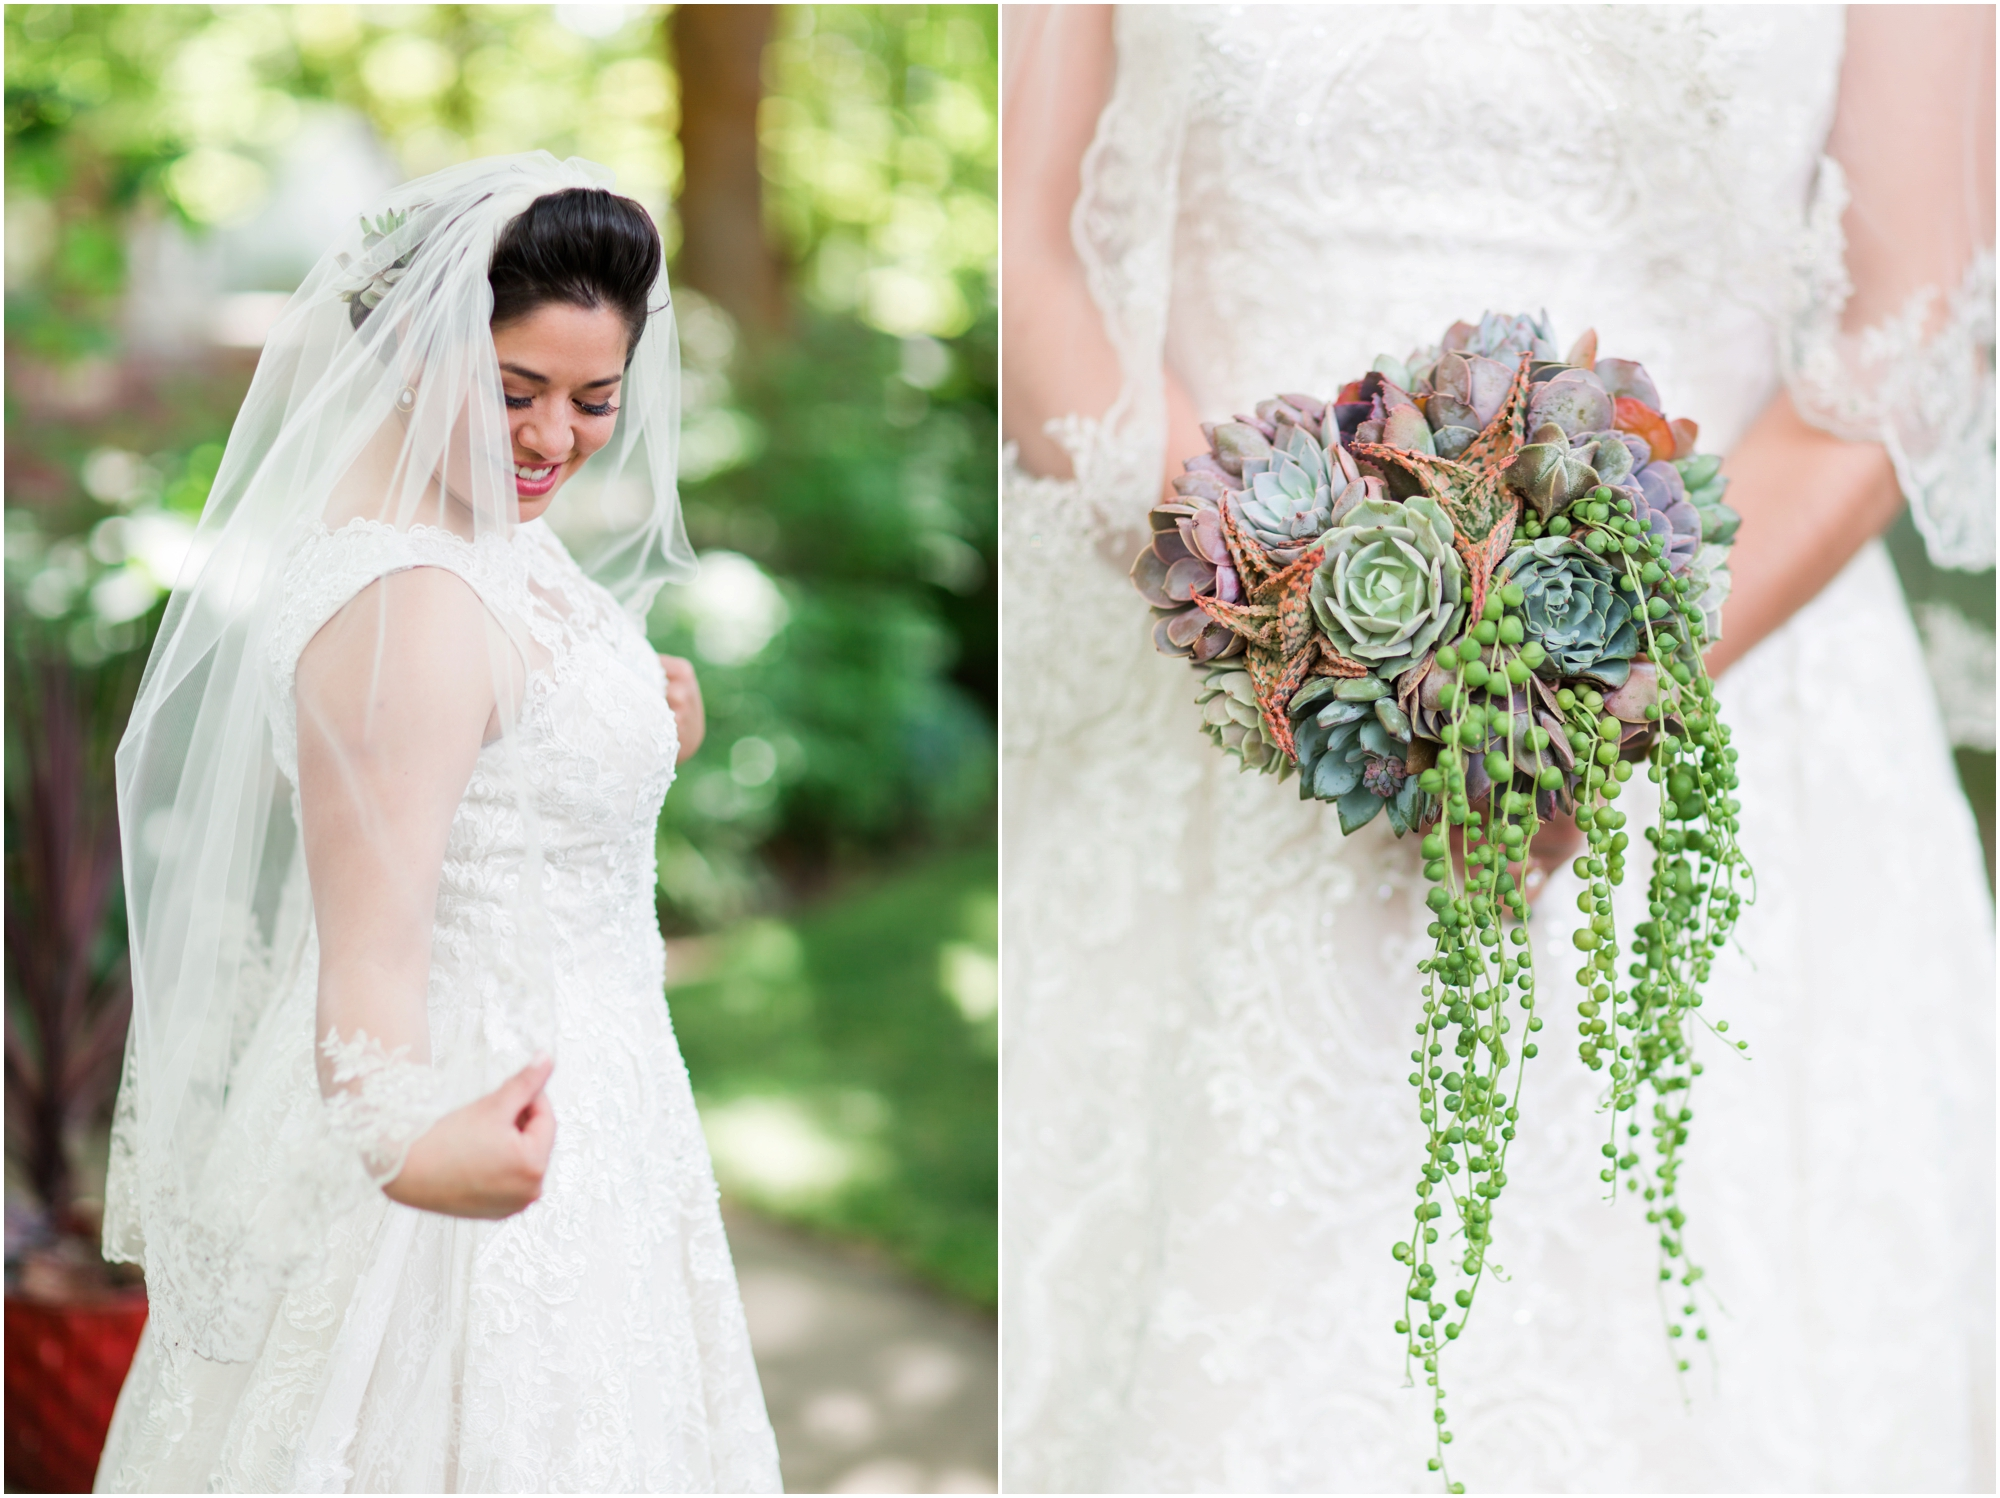 Garden wedding in Ellensburg, WA. Photos by Briana Calderon Photography based in the greater Seattle-Tacoma Area._1282.jpg